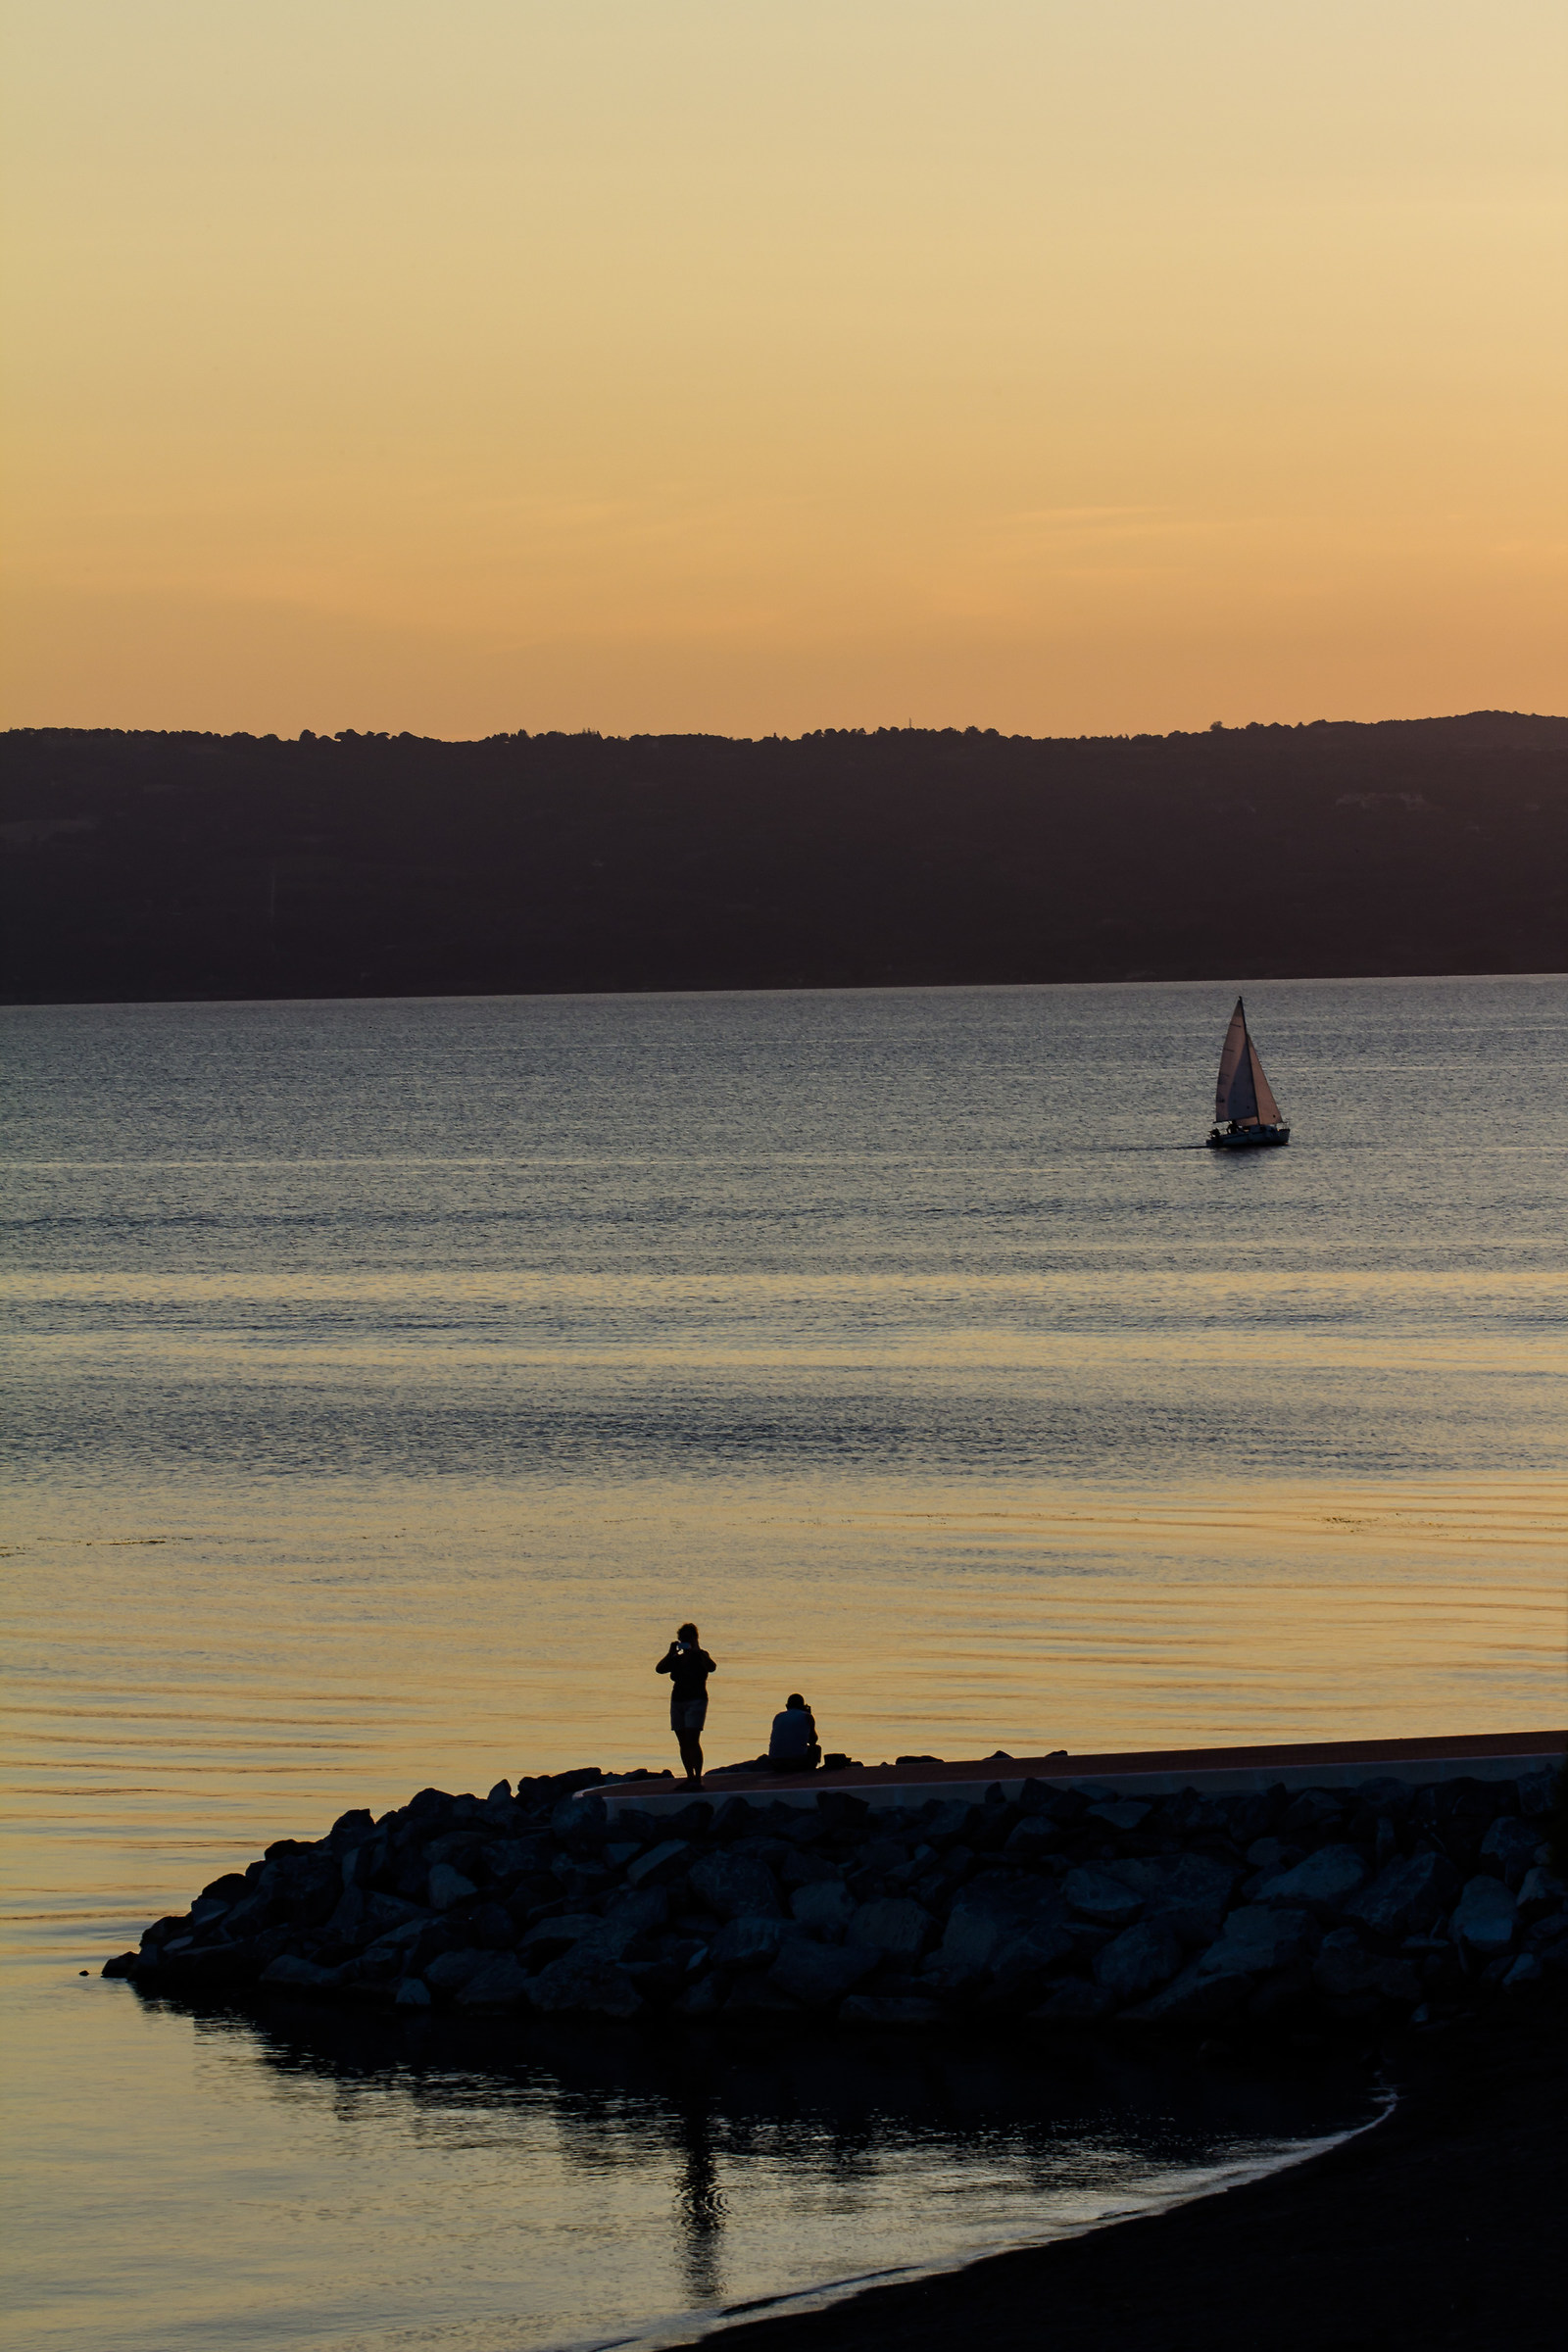 Sunset on Lake Bolsena...